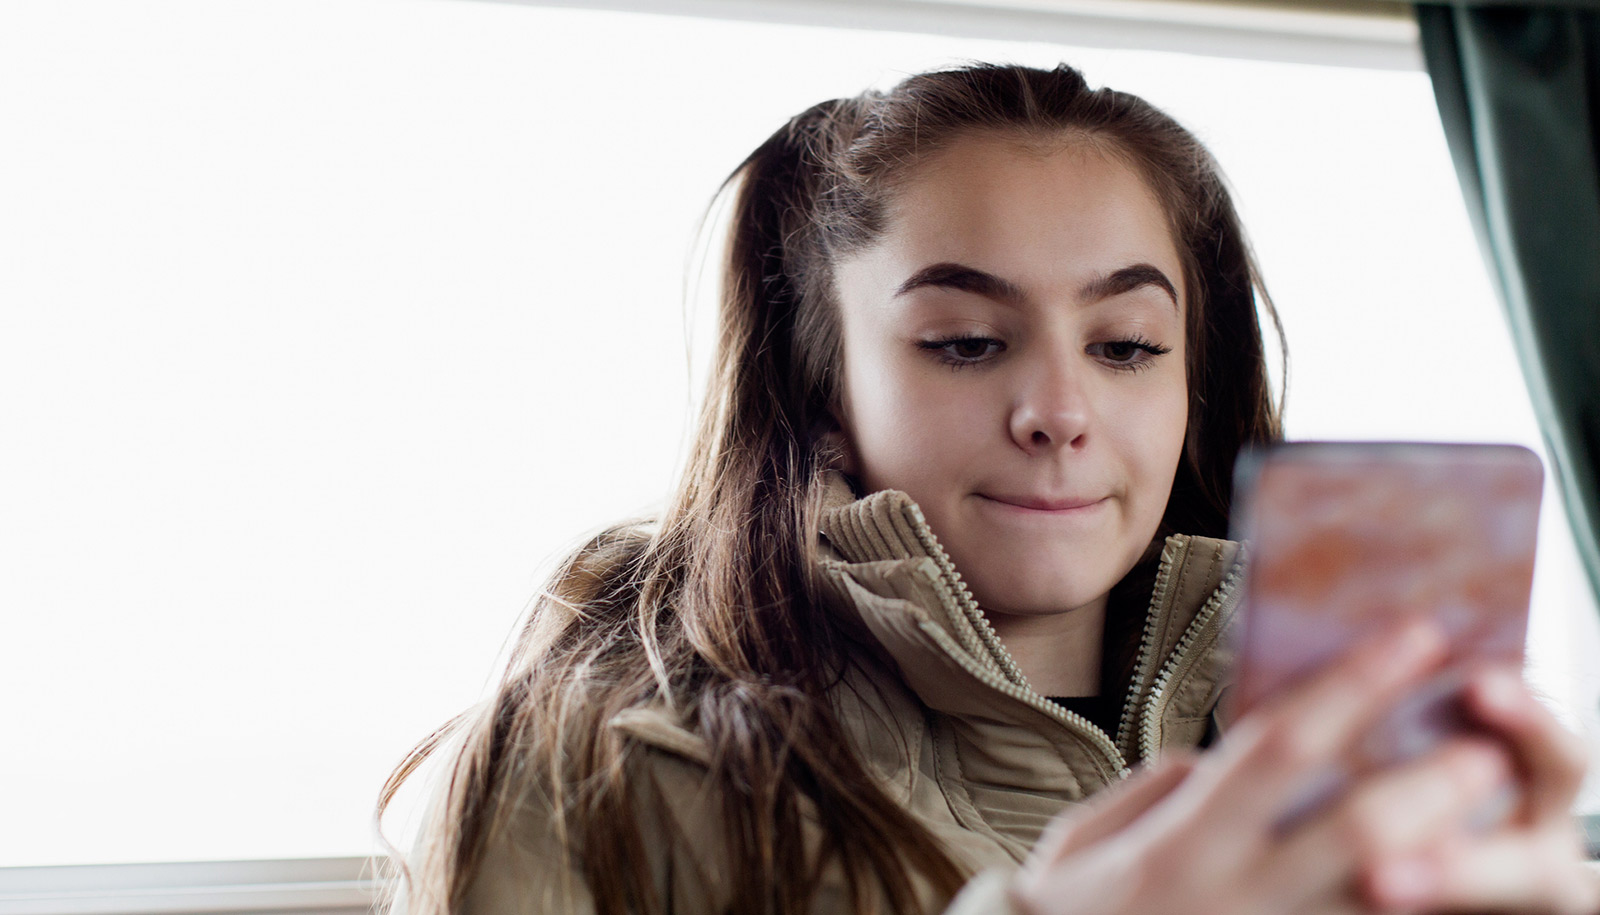 Teens who spend hours on social media report these behaviors